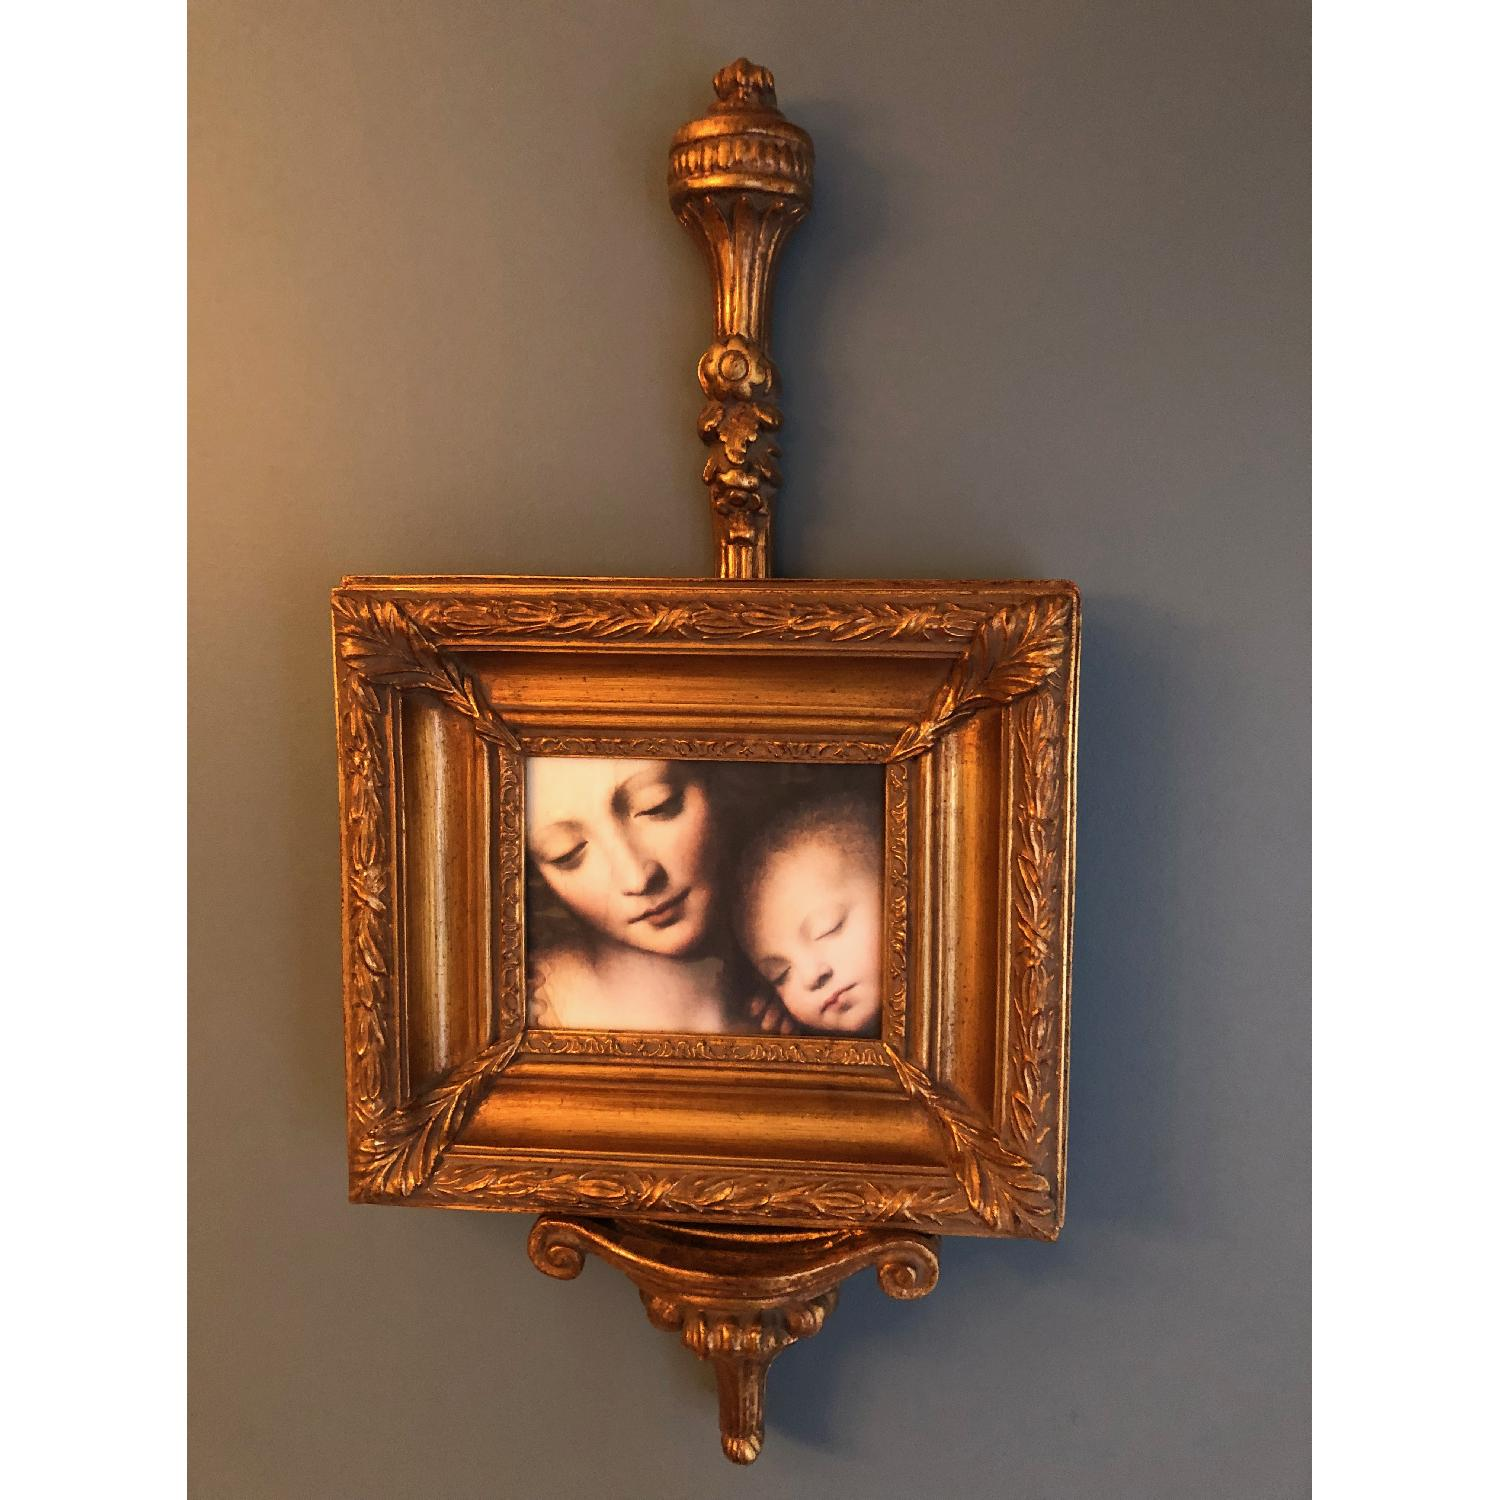 Bombay Company Mother w/ Baby Print Framed w/ Holder-0